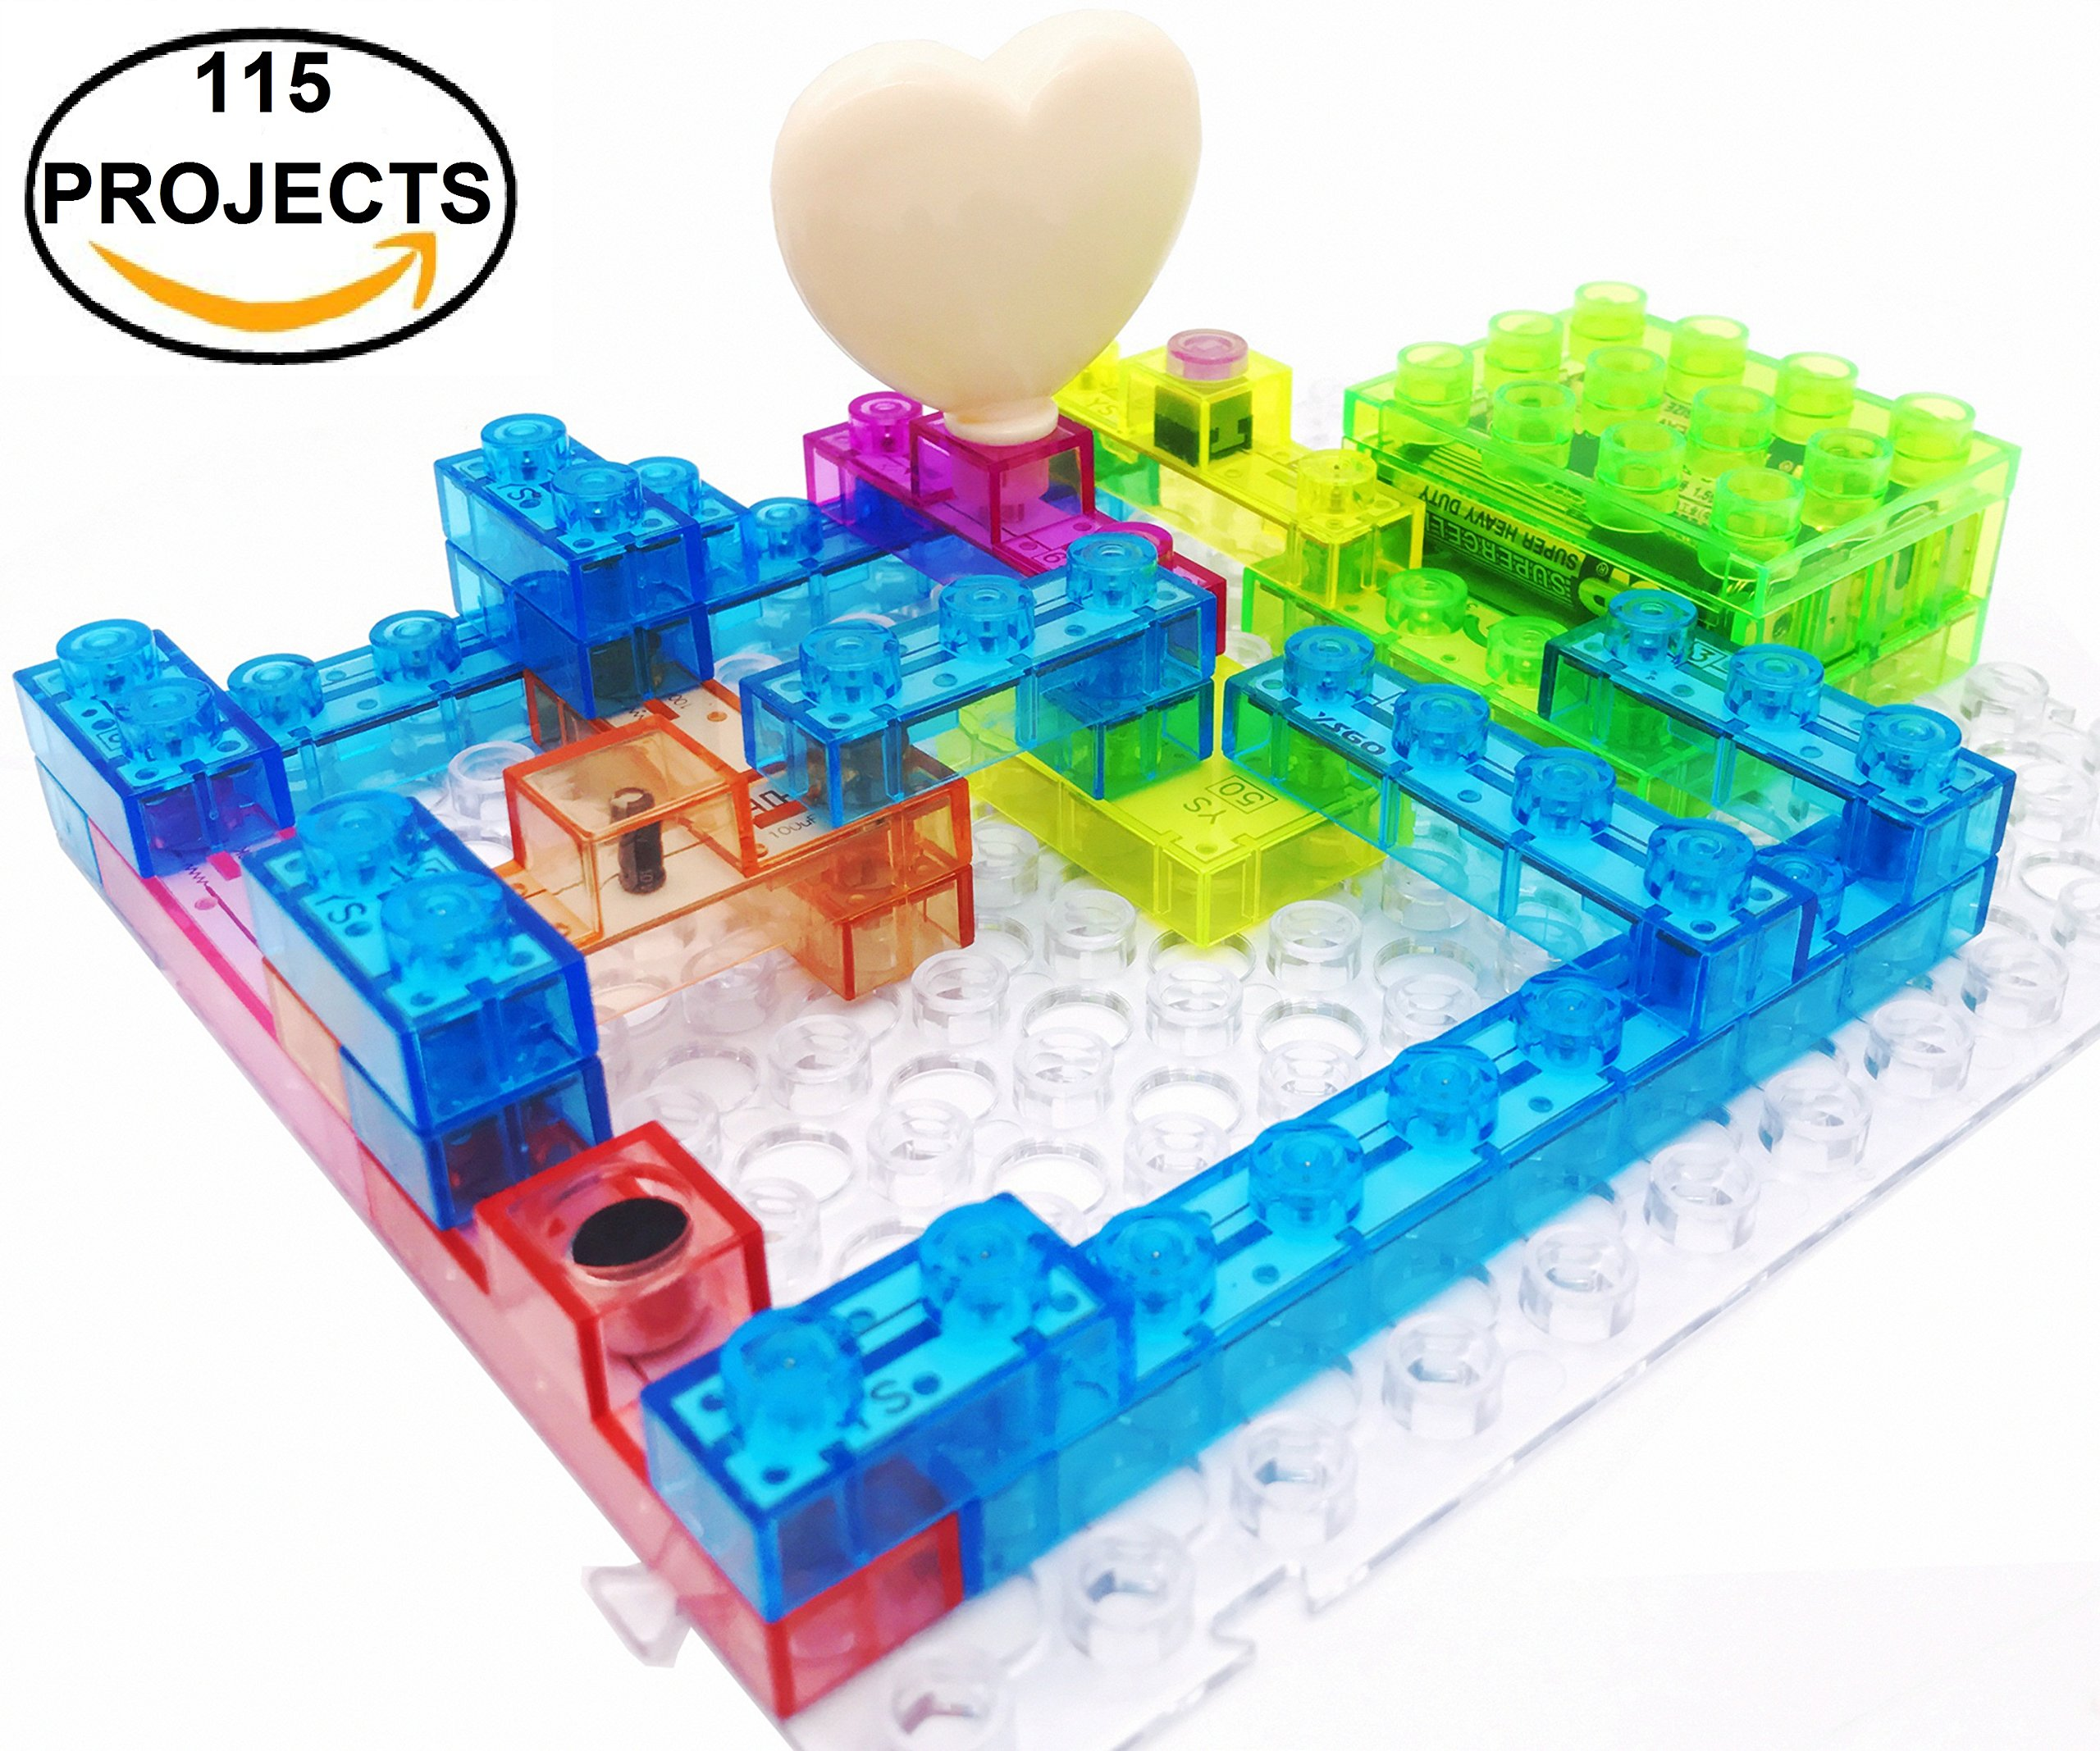 cheap kids building projects, find kids building projects deals onget quotations · 7tech 115 projects integrated circuit electronic building blocks diy brain game educational science toys for kids